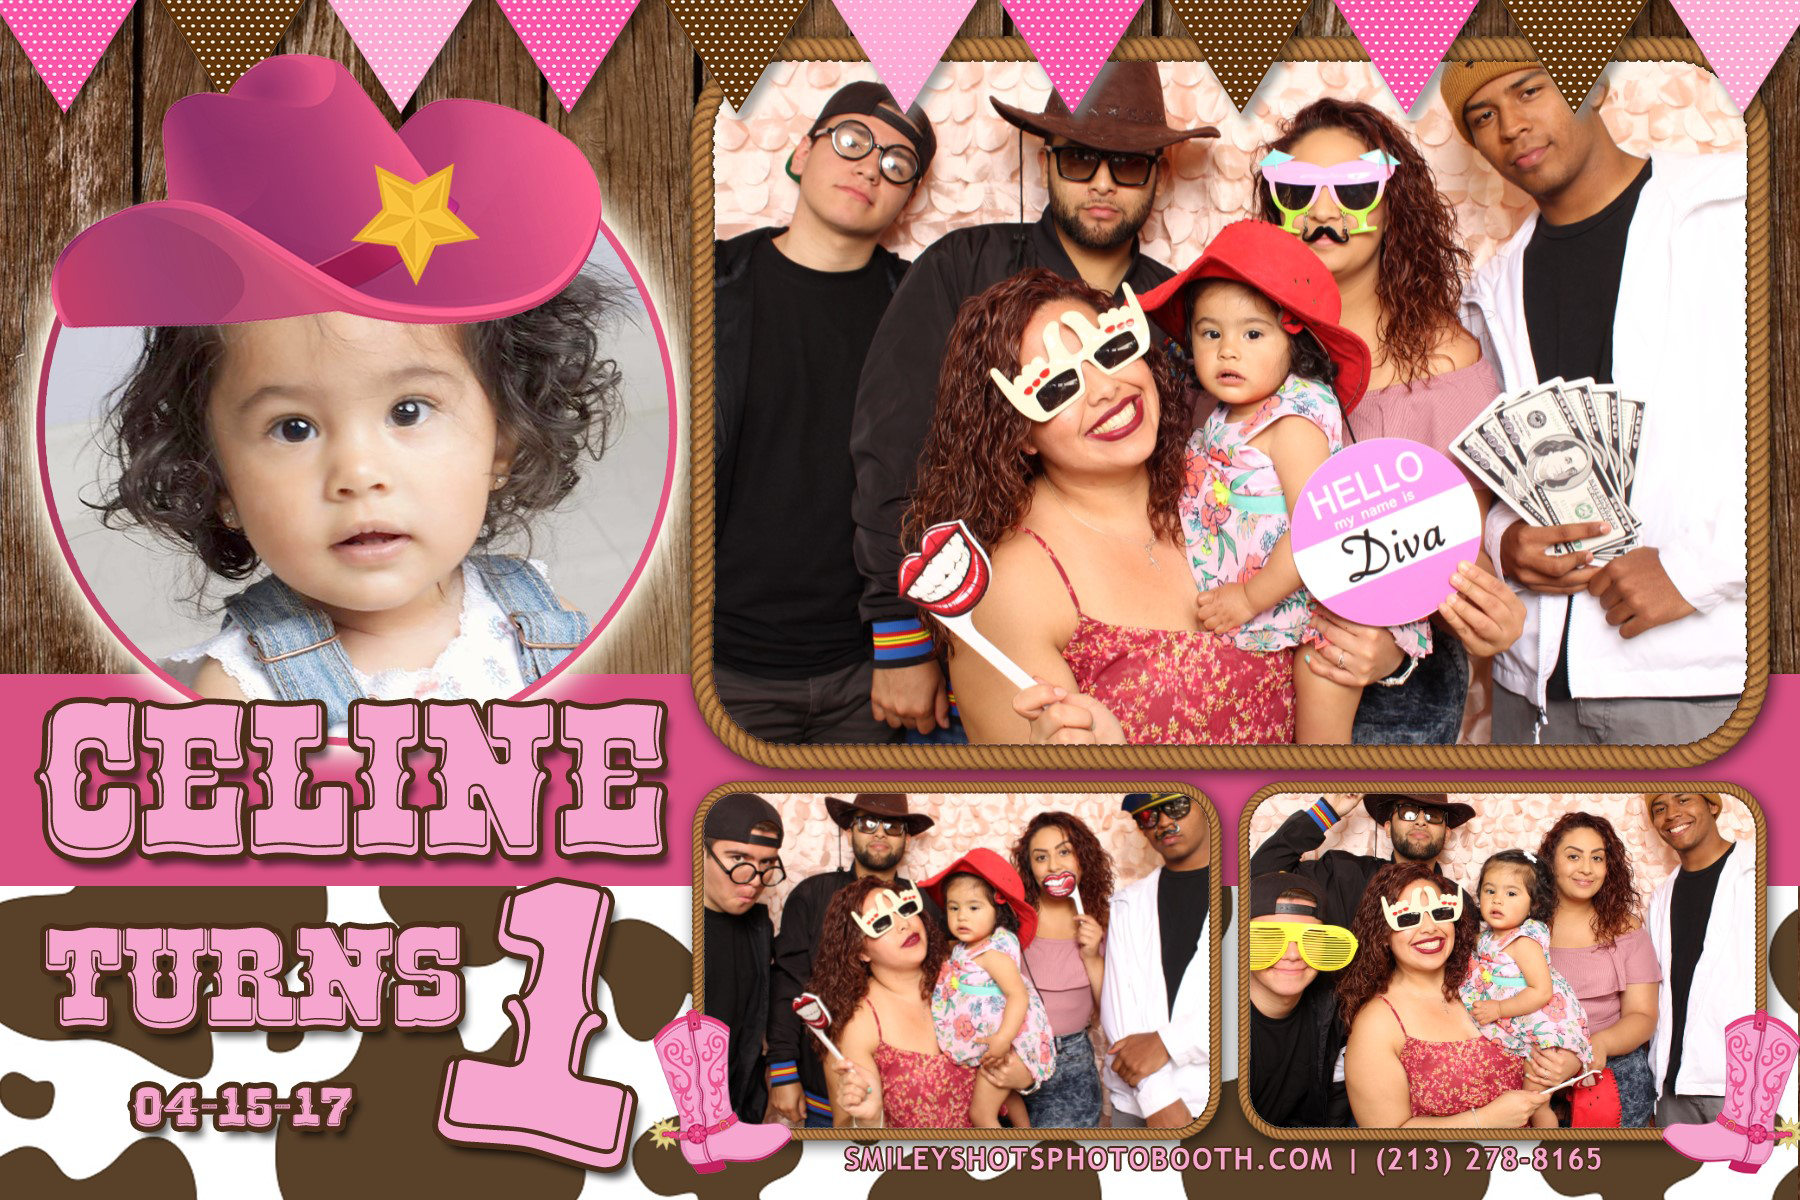 Celine turns 1 Smiley Shots Photo Booth Photobooth (55).png